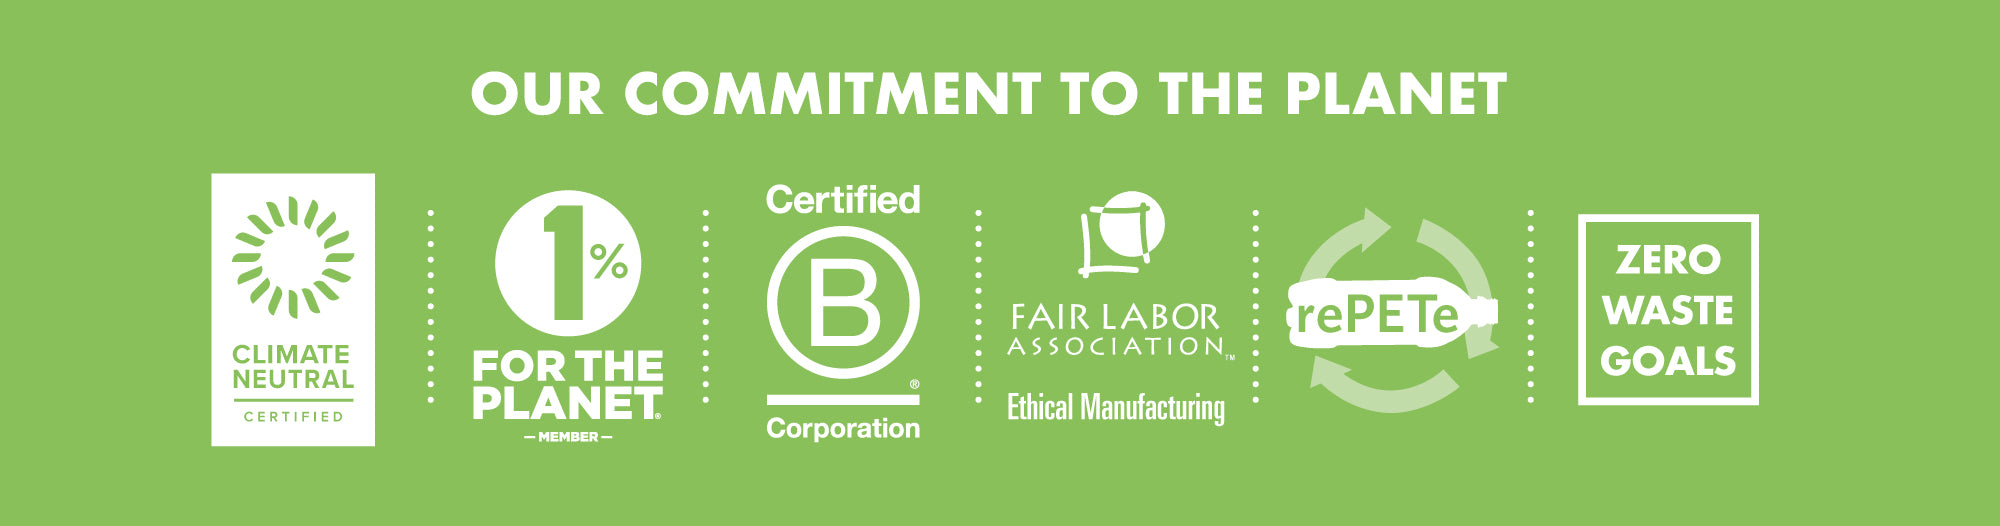 Our commitment to the planet: Climate Neutral, 1% for the Planet, Certified B Corp, Fair Labor Association, rePETe recycled plastic material, Zero Waste Goals